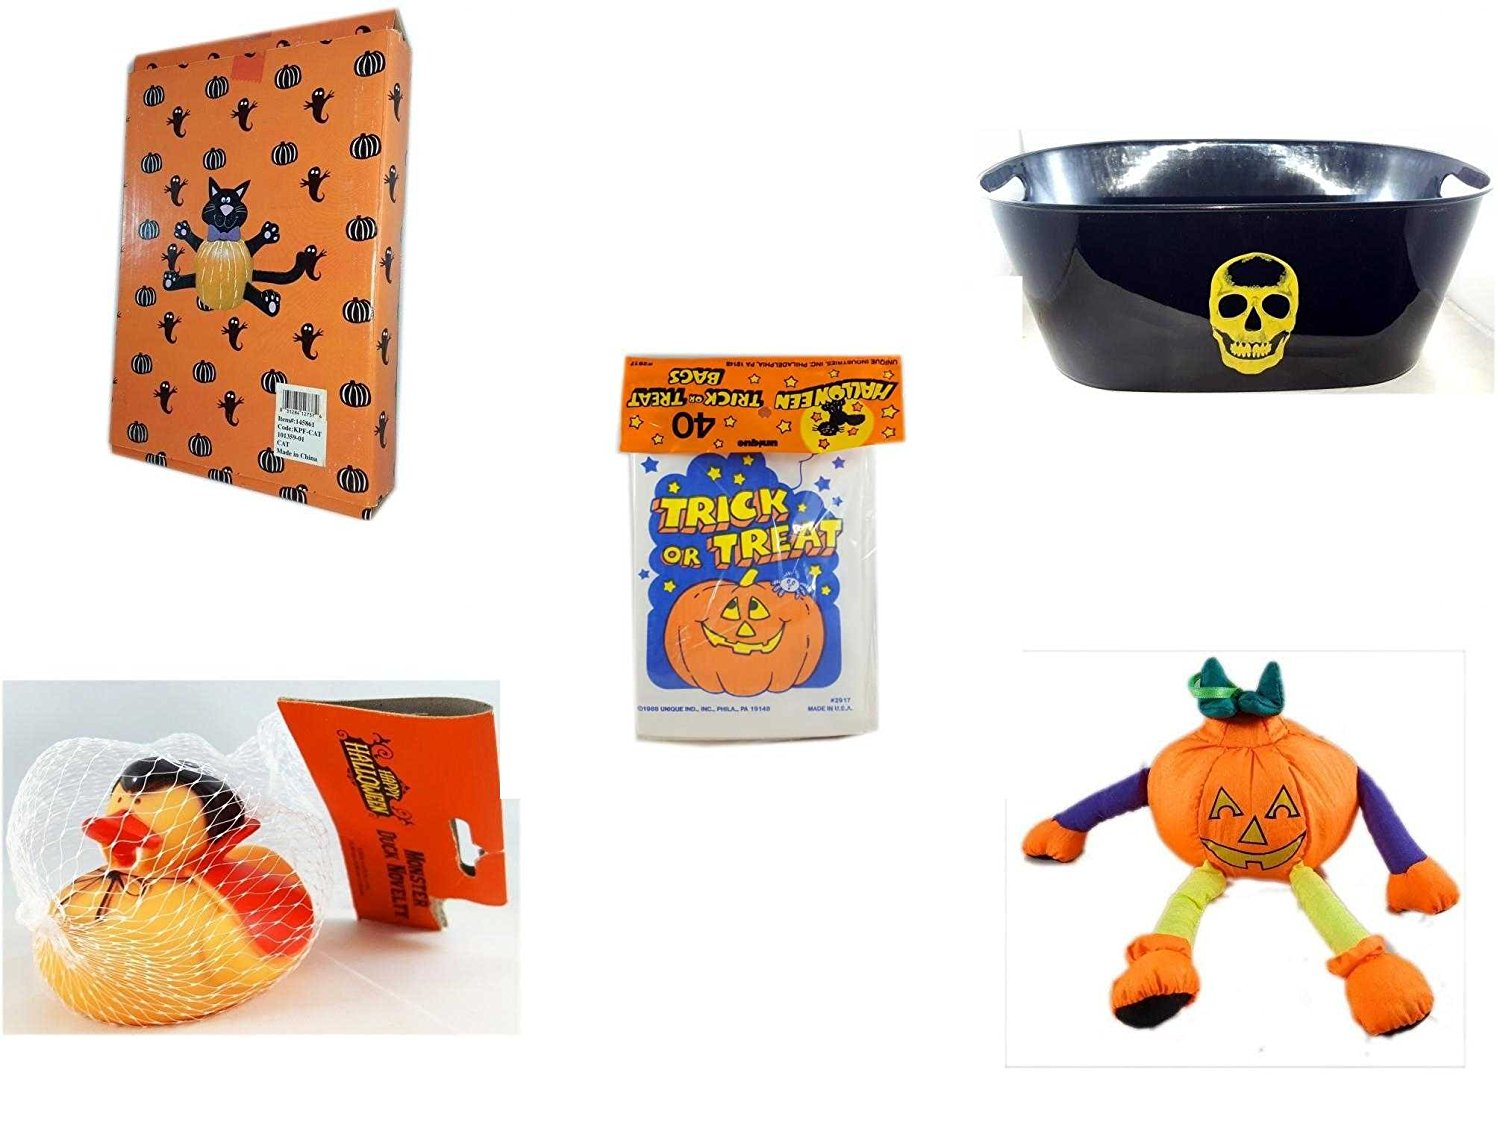 Halloween Fun Gift Bundle [5 piece] - Halloween Cat Pumpkin Push In 5 Piece Head Arms Legs - Black With Skeleton Oval Party Tub - Halloween Trick or Treat Bags 40/ct - Happy Halloween Monster Duck N